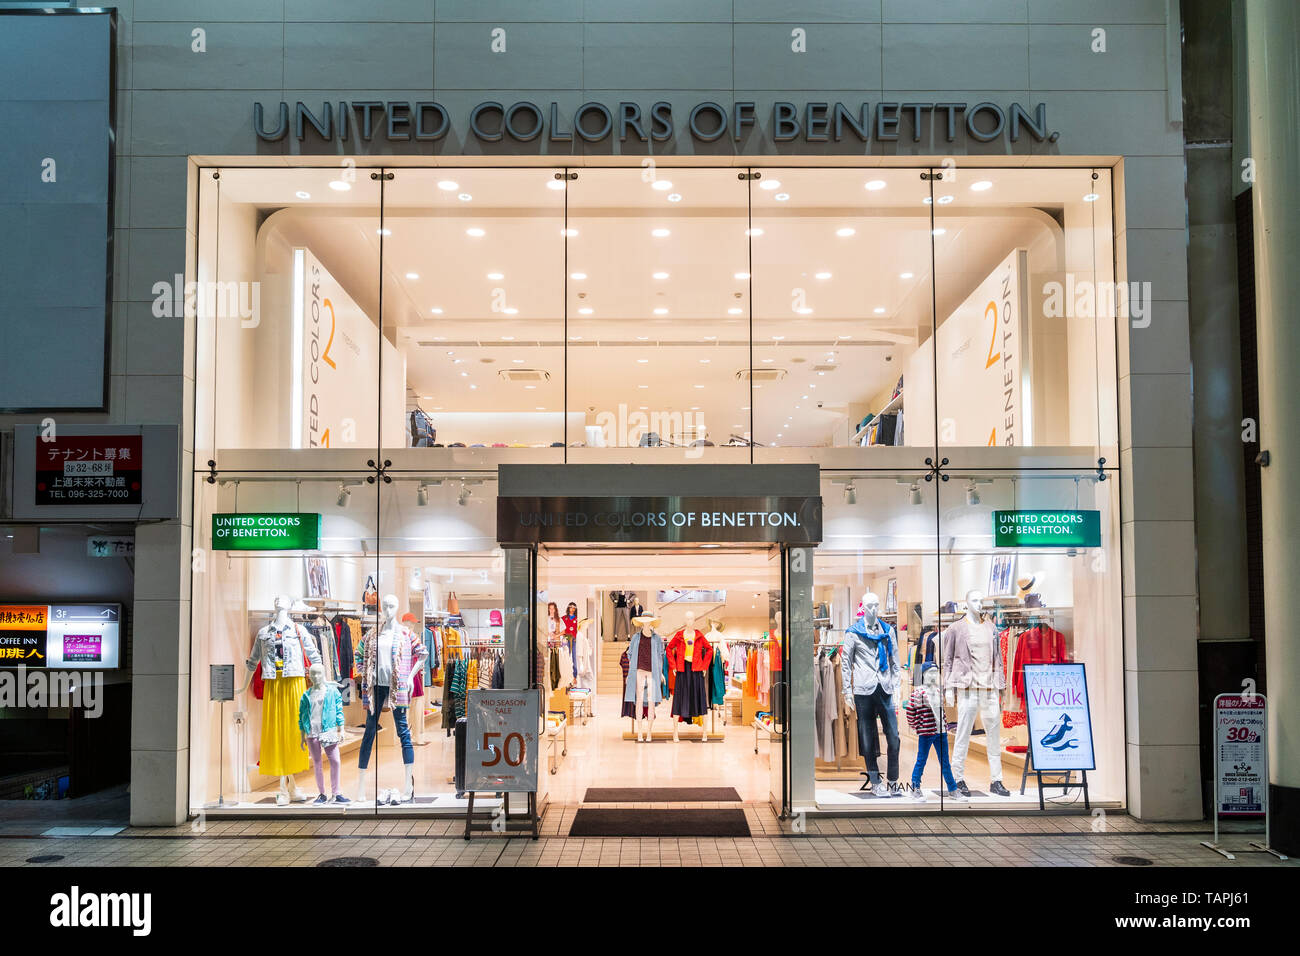 Benetton fashionable clothing store in Shimotori shopping arcade, Kumamoto, Japan. Night shot of exterior of open shop with 50% sale sign by entrance. - Stock Image